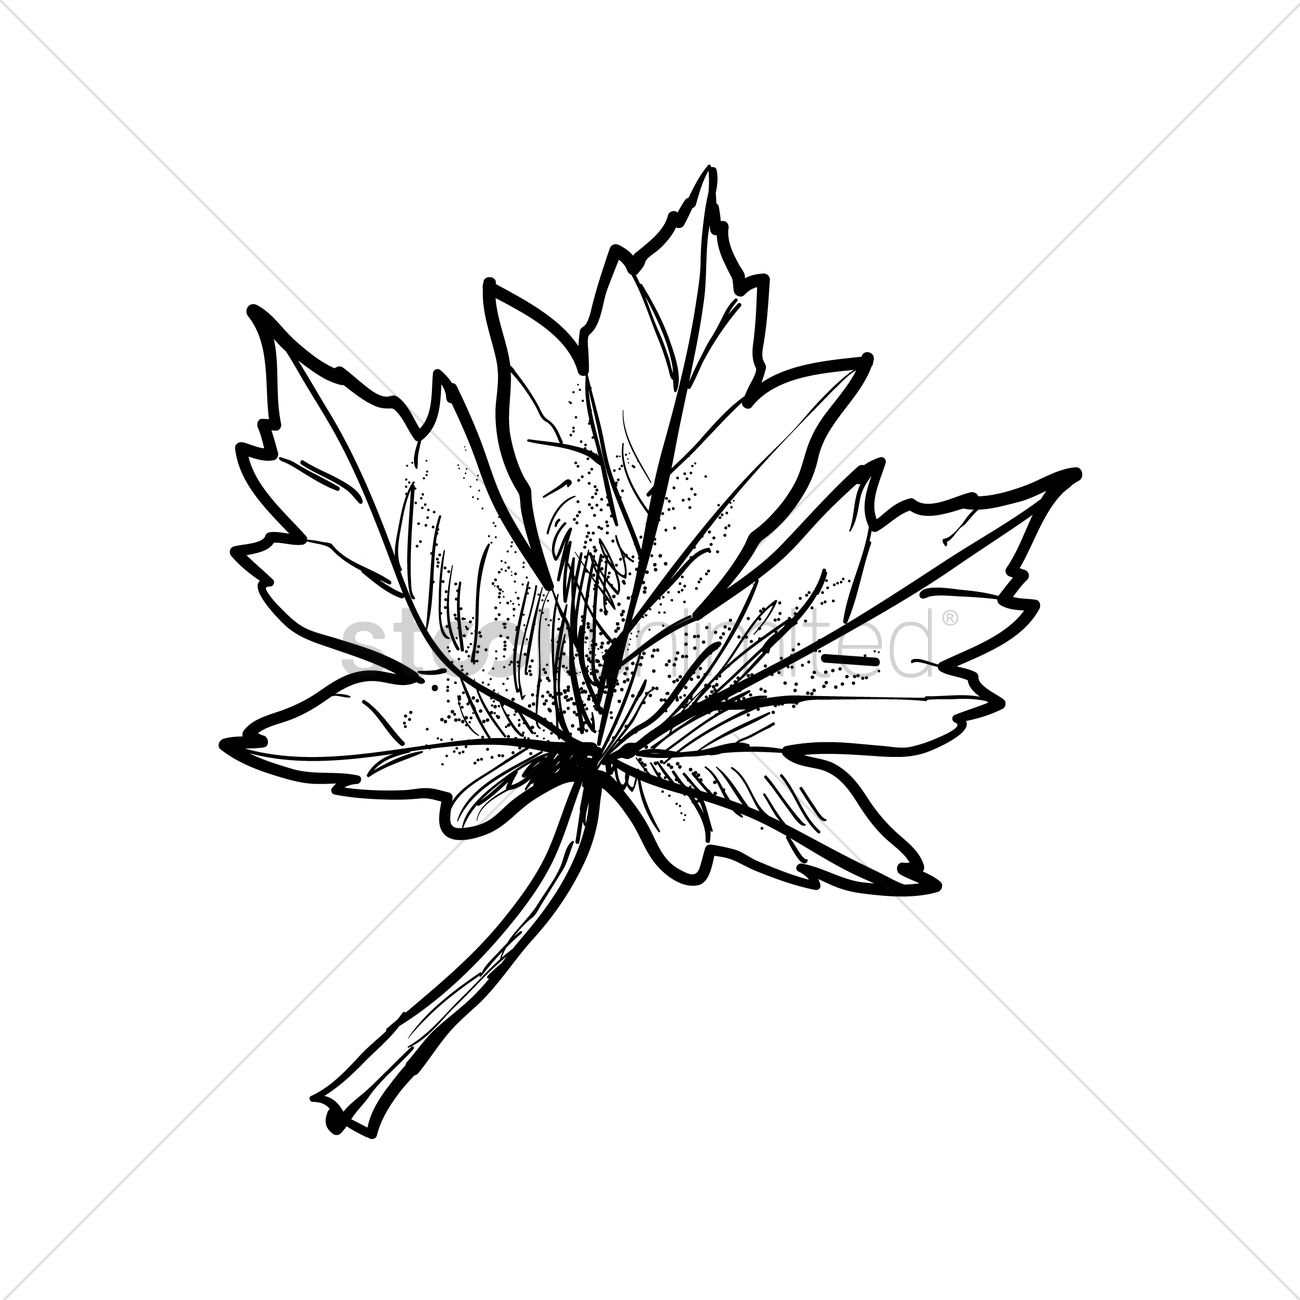 1300x1300 Maple Leaf Vector Image